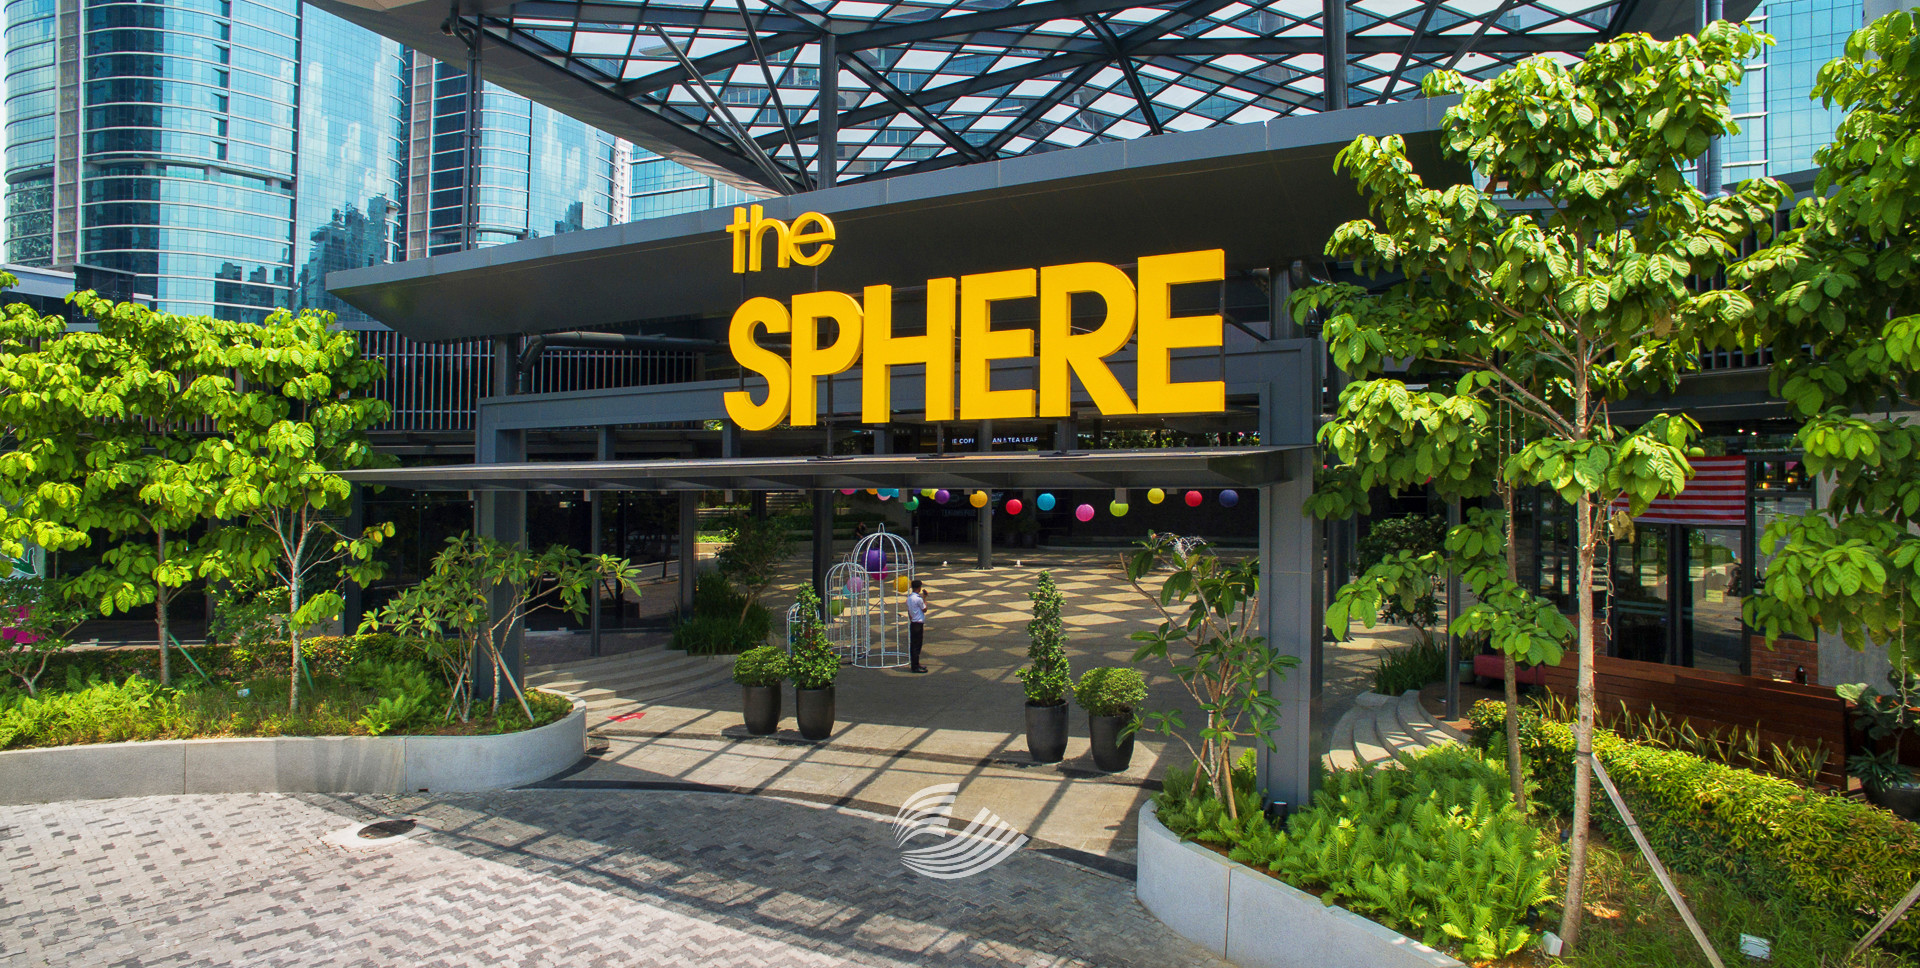 The Sphere (4).jpg